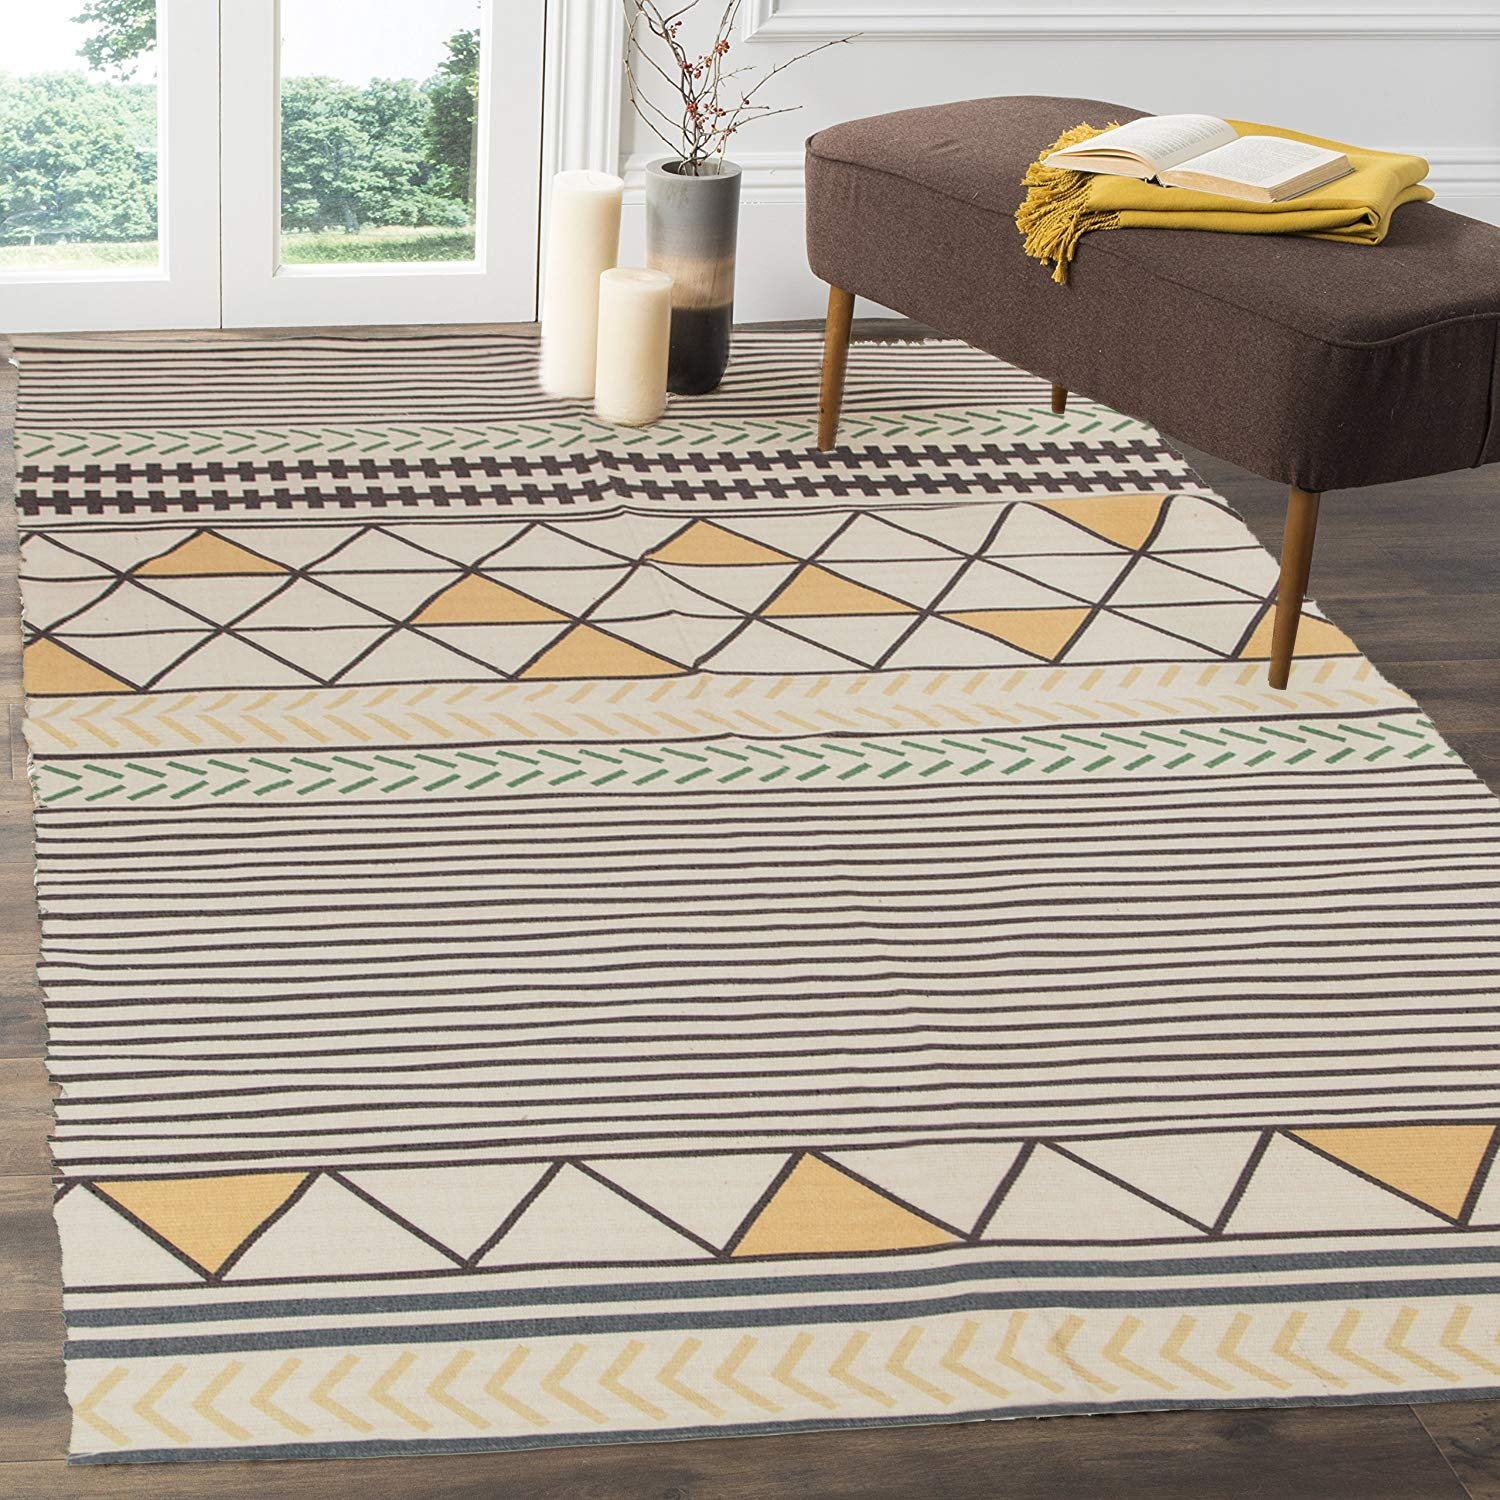 HEBE Cotton Area Rugs 4